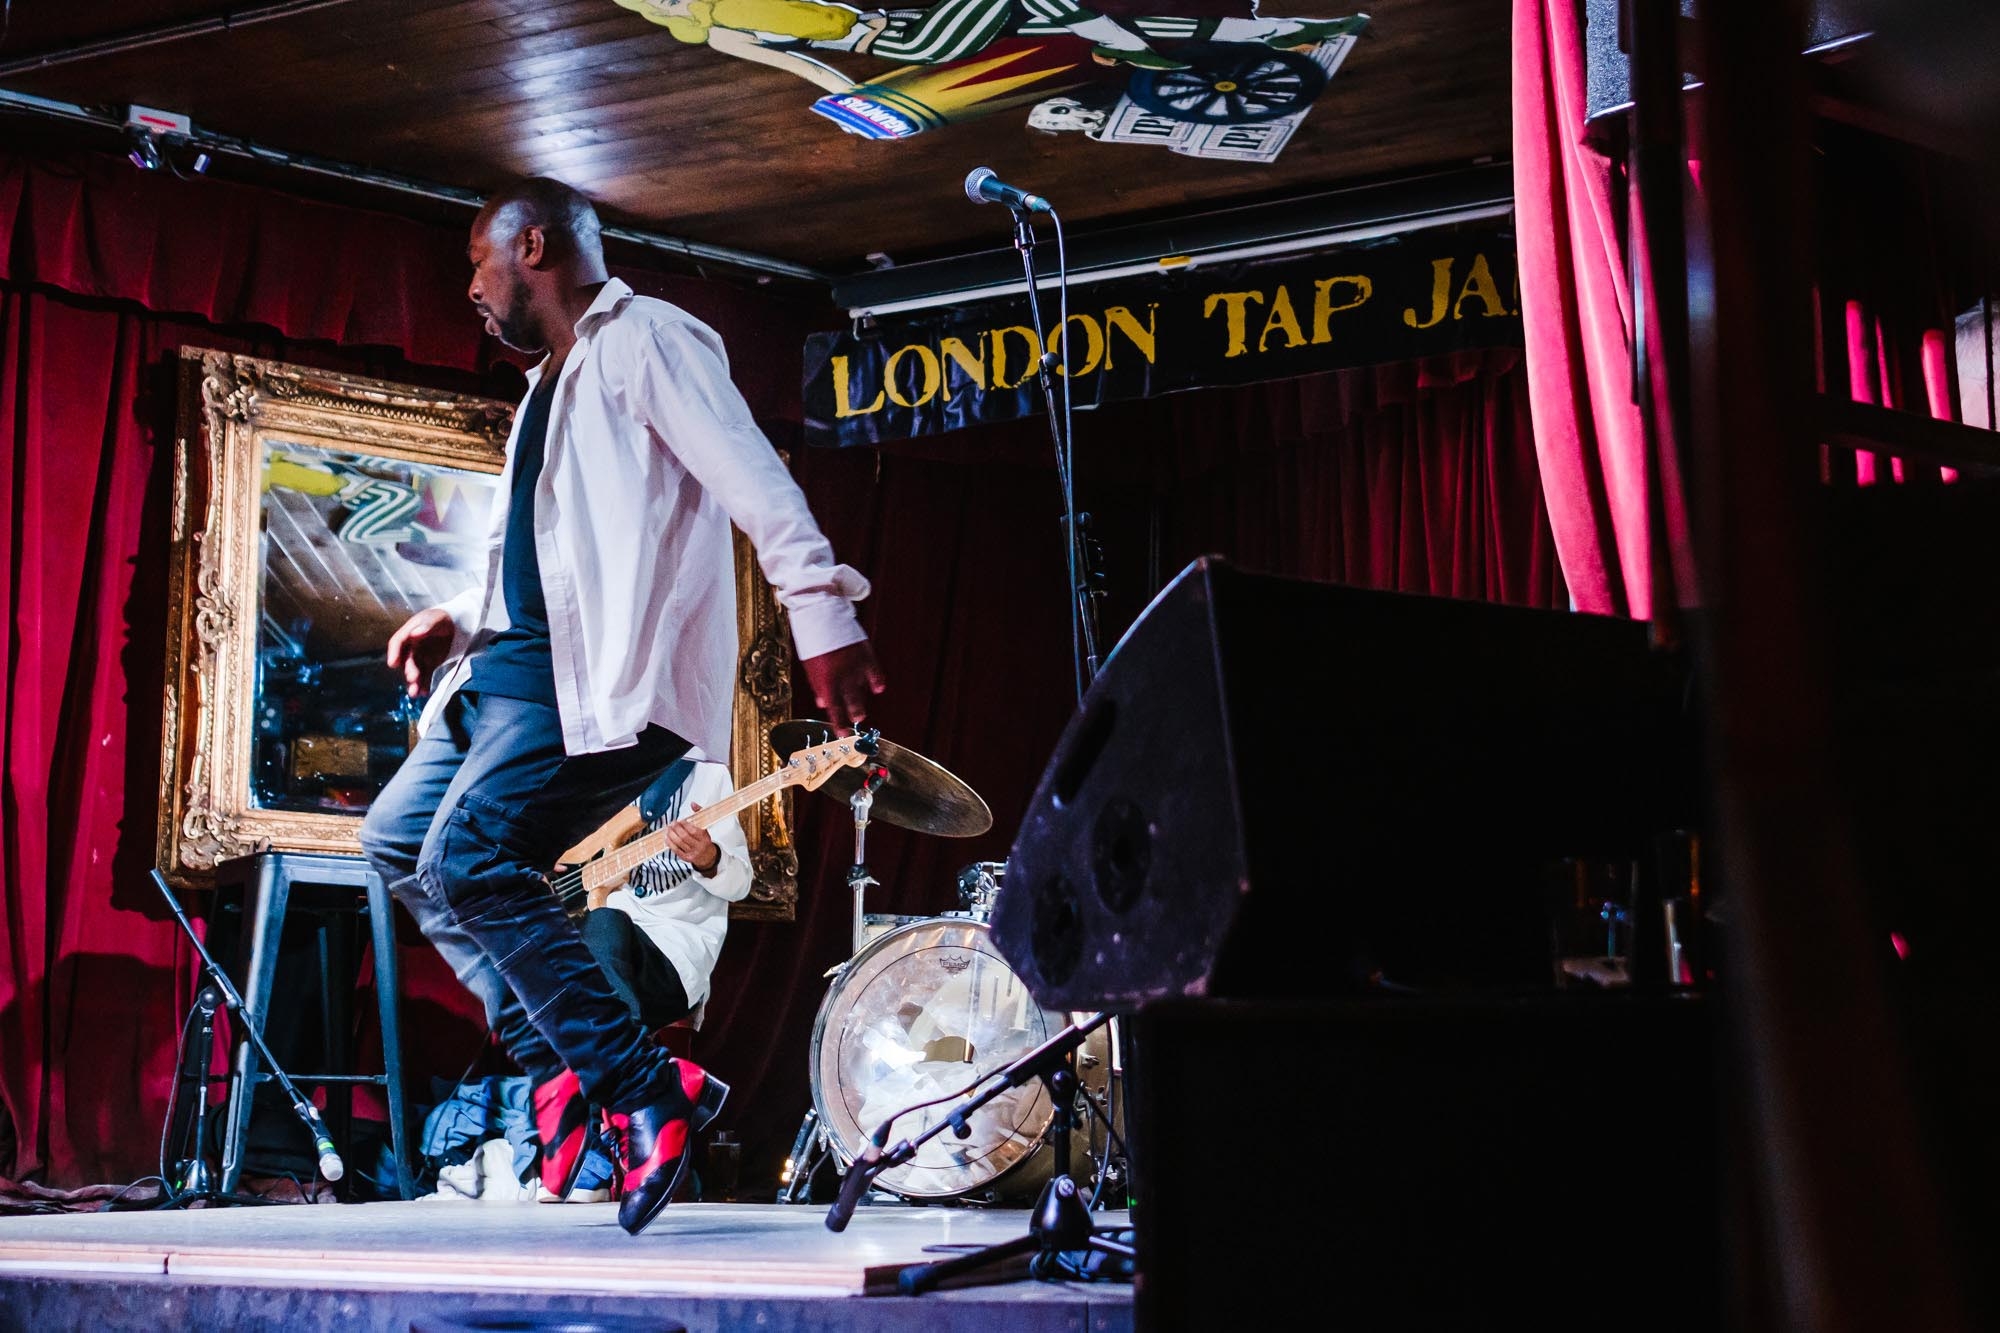 London nightlife hoofer tap dance